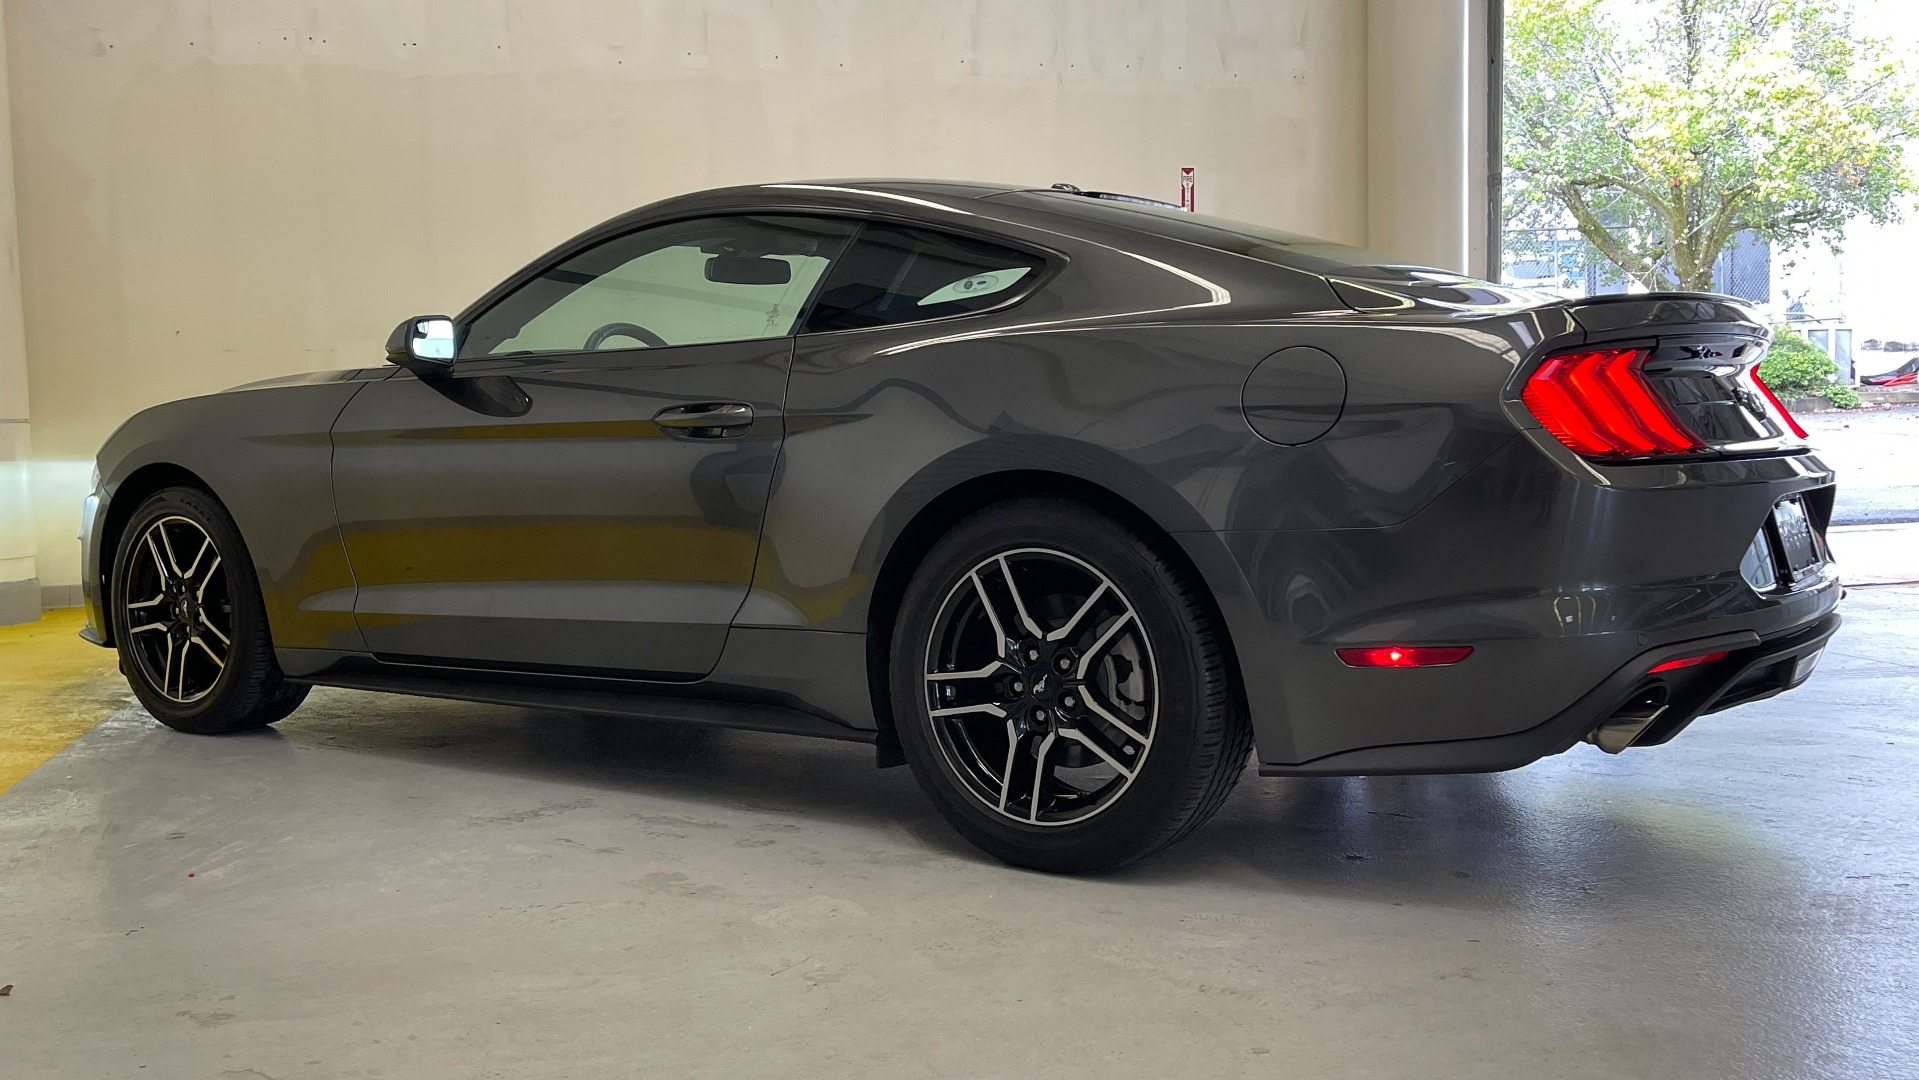 Used 2019 Ford MUSTANG ECOBOOST 2.3L / 10-SPD AUTO / SYNC3 8INCH SCREEN / TRACK APPS / REARVIEW for sale $31,795 at Formula Imports in Charlotte NC 28227 10